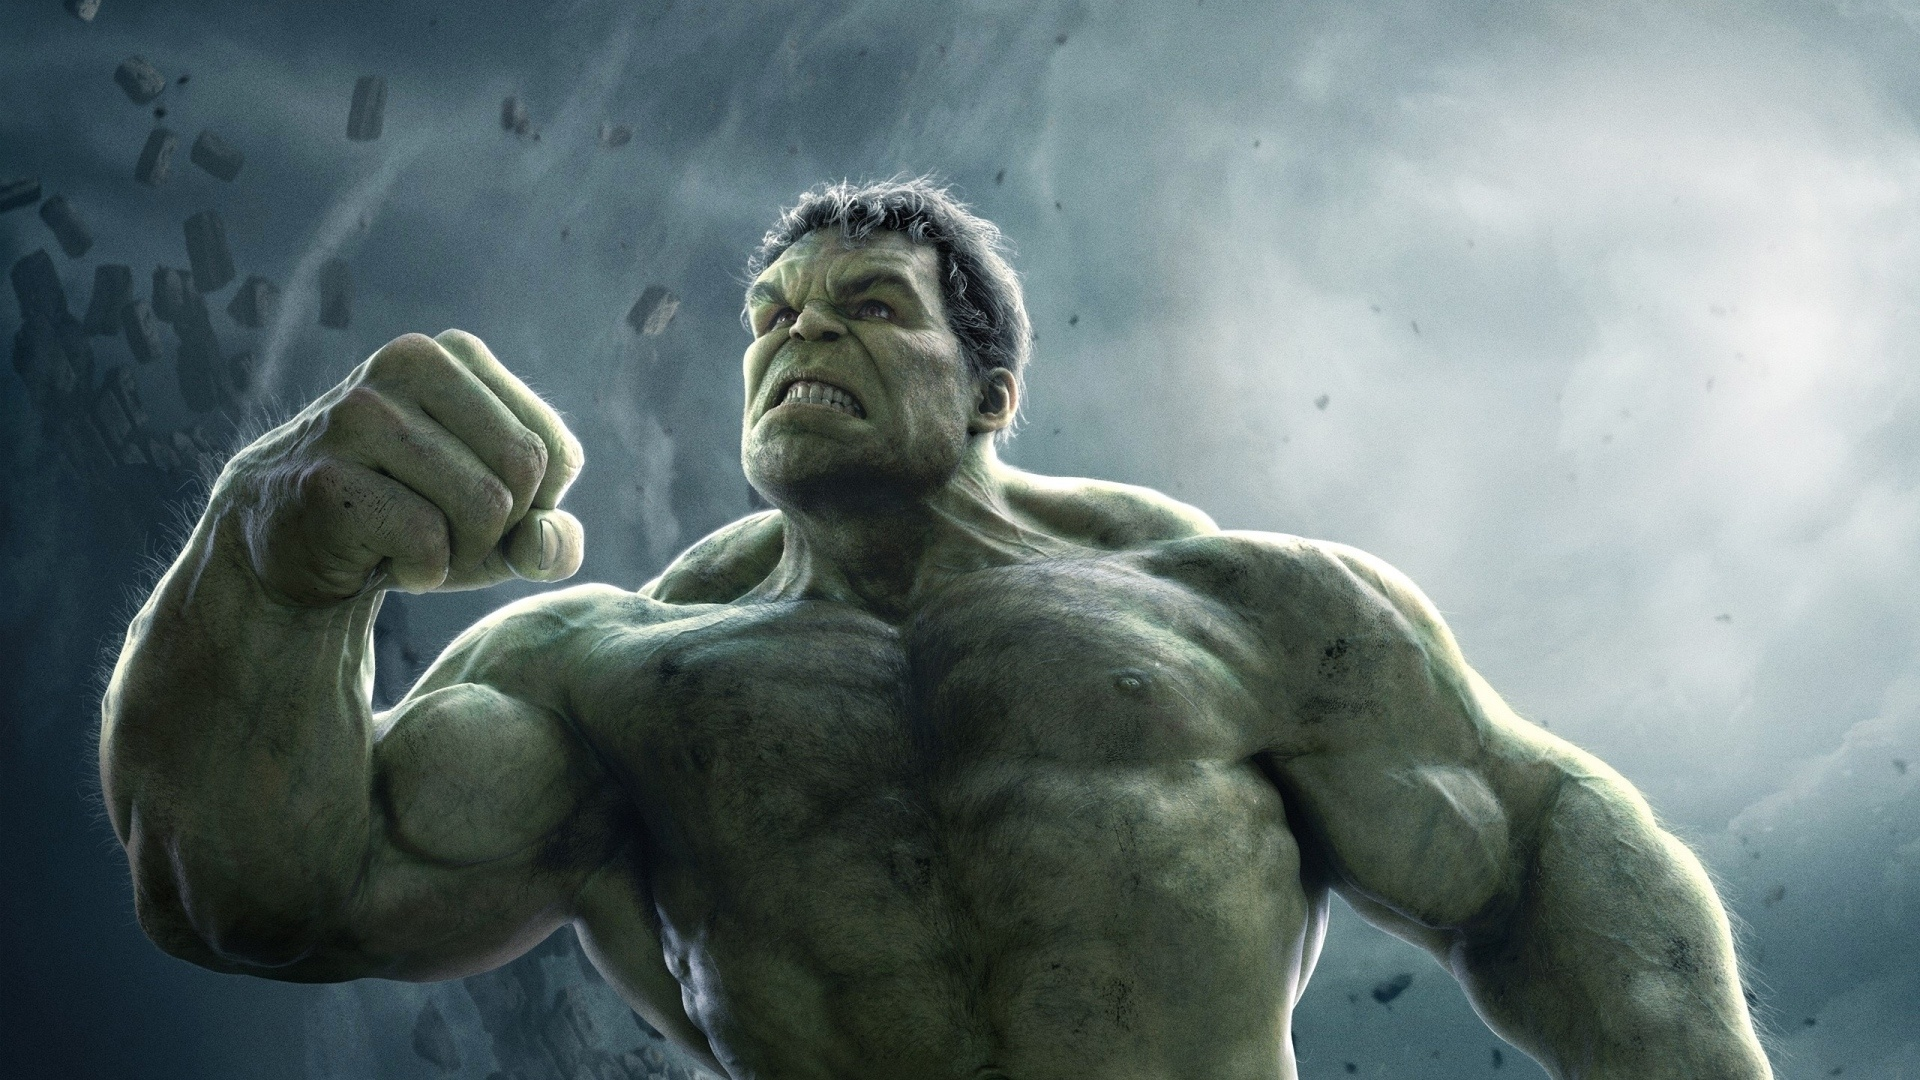 Hulk windows wallpaper